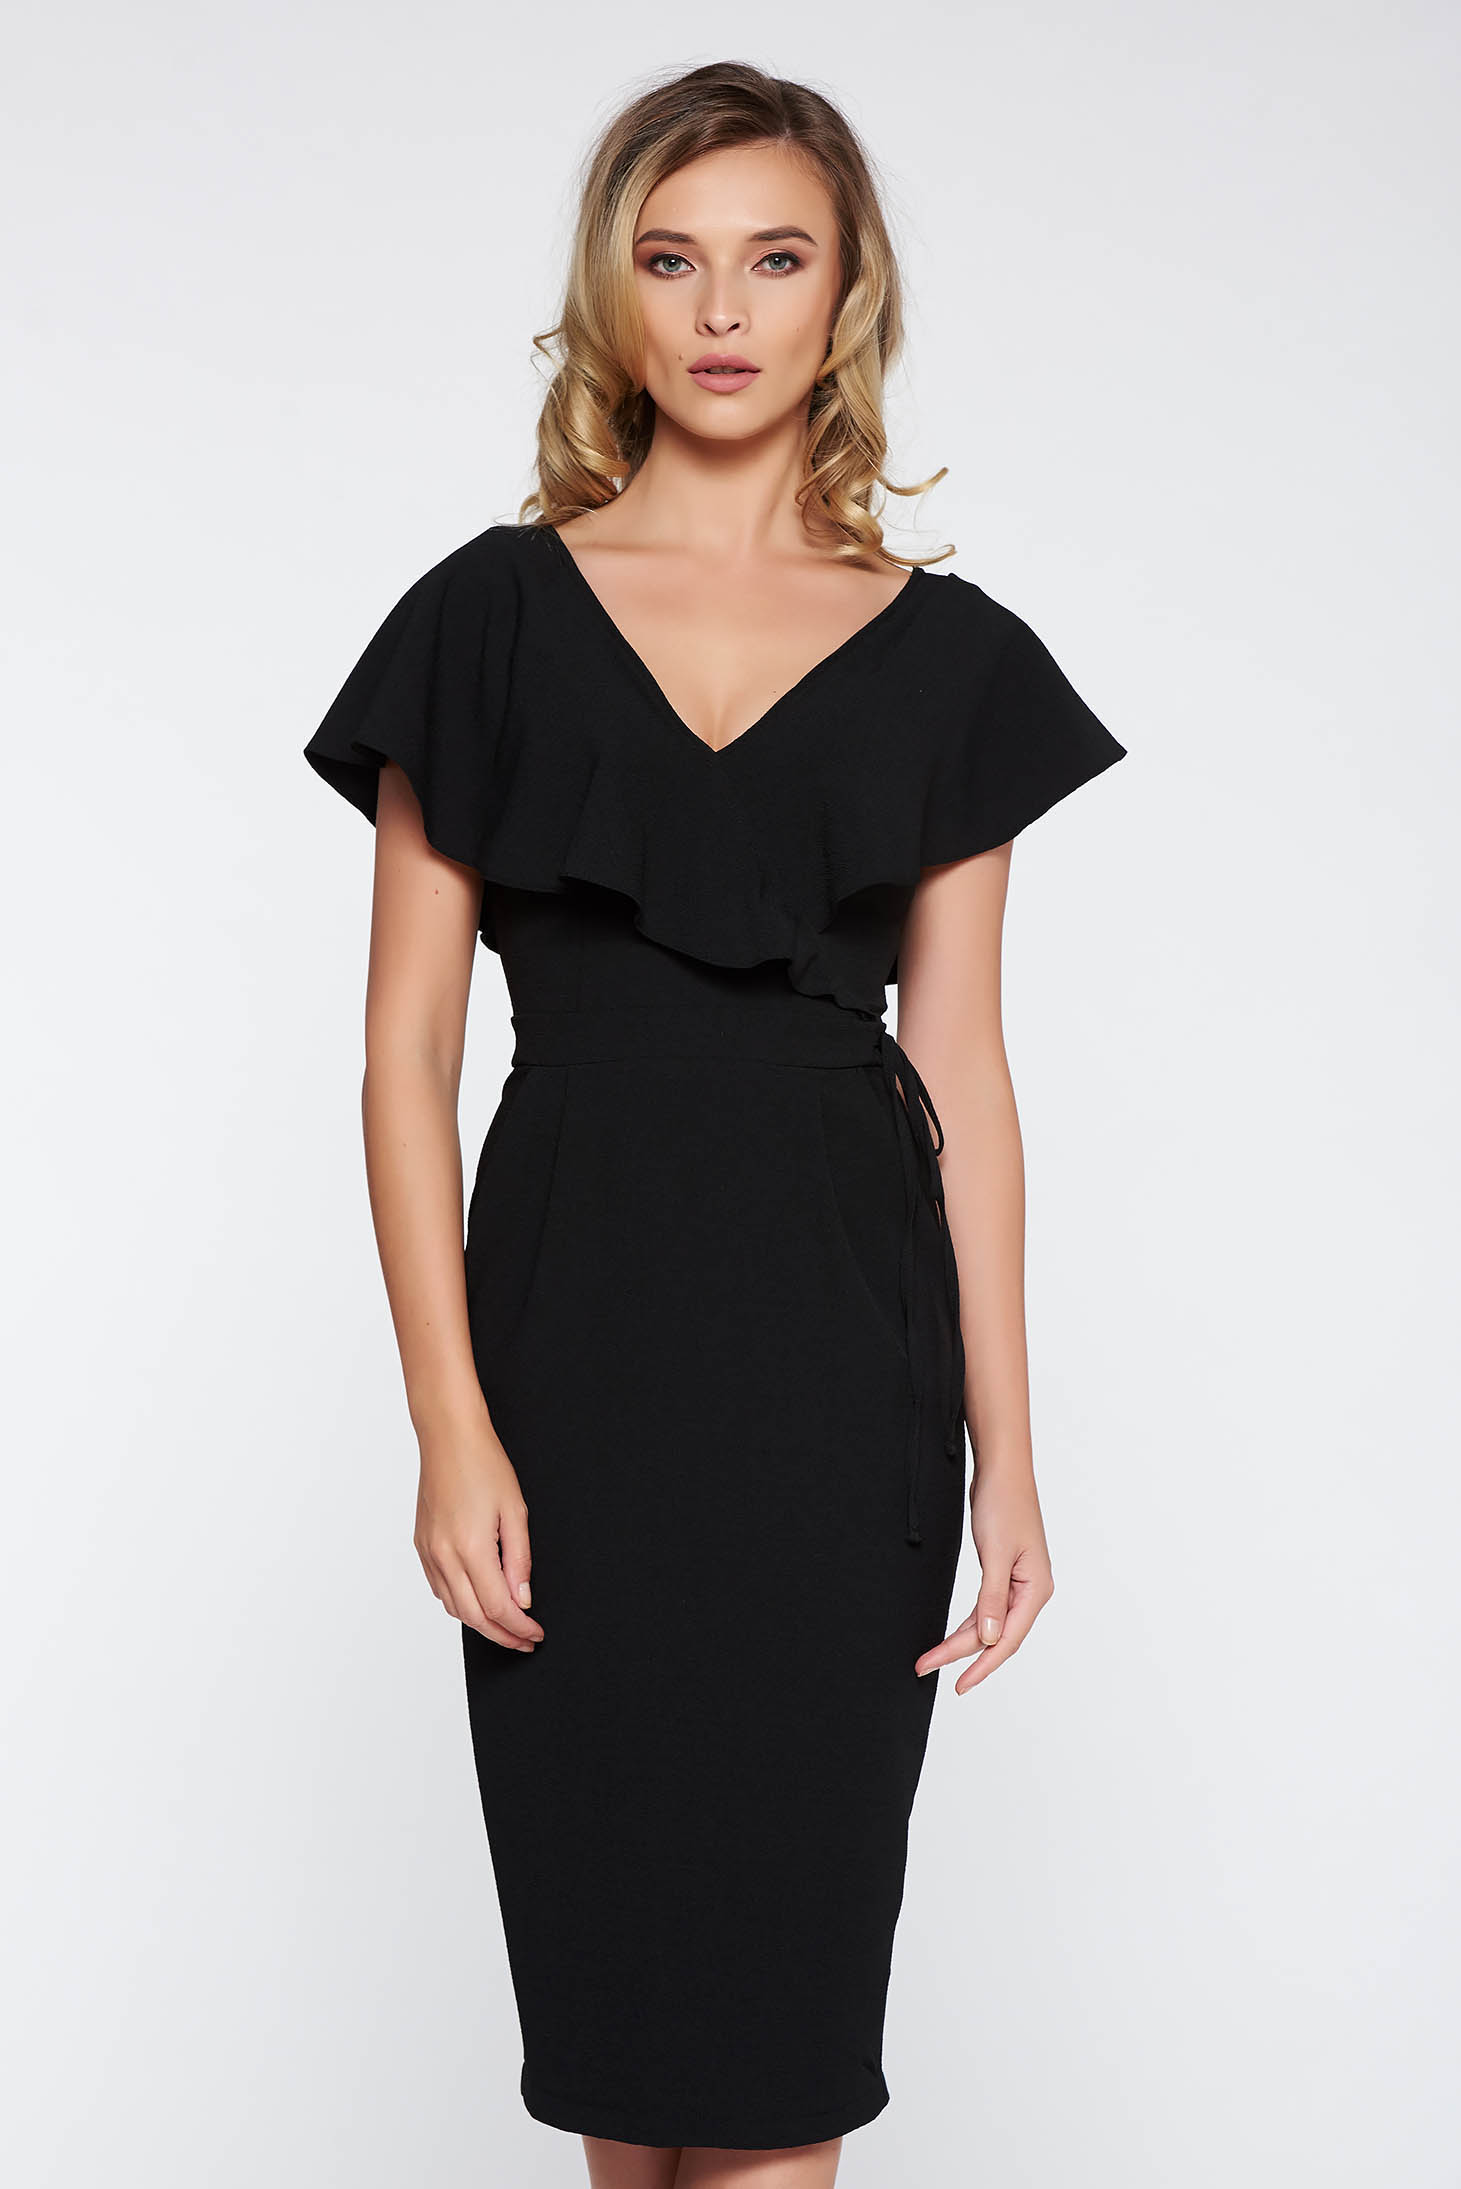 StarShinerS black elegant pencil dress slightly elastic fabric is fastened around the waist with a ribbon with v-neckline